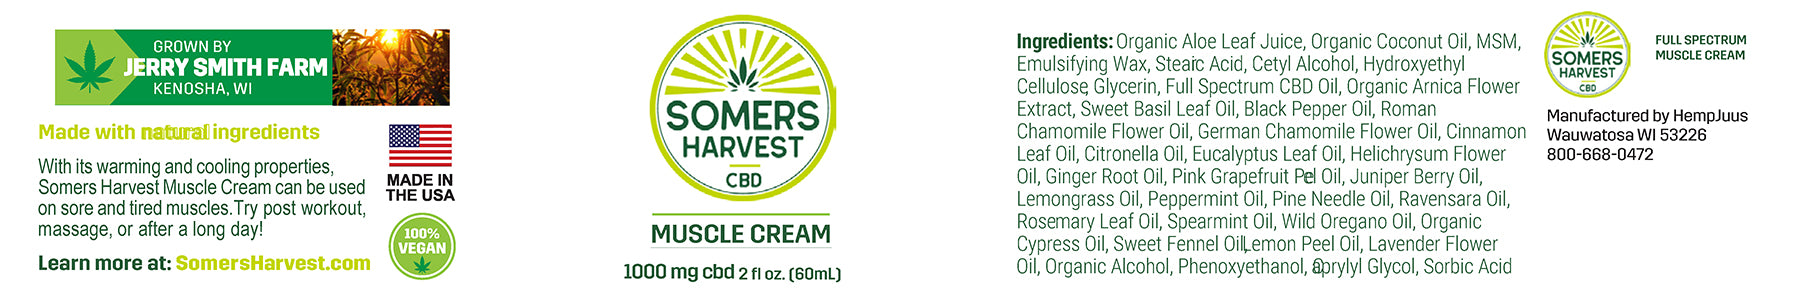 Somers Harvest CBD Muscle Cream Package Label